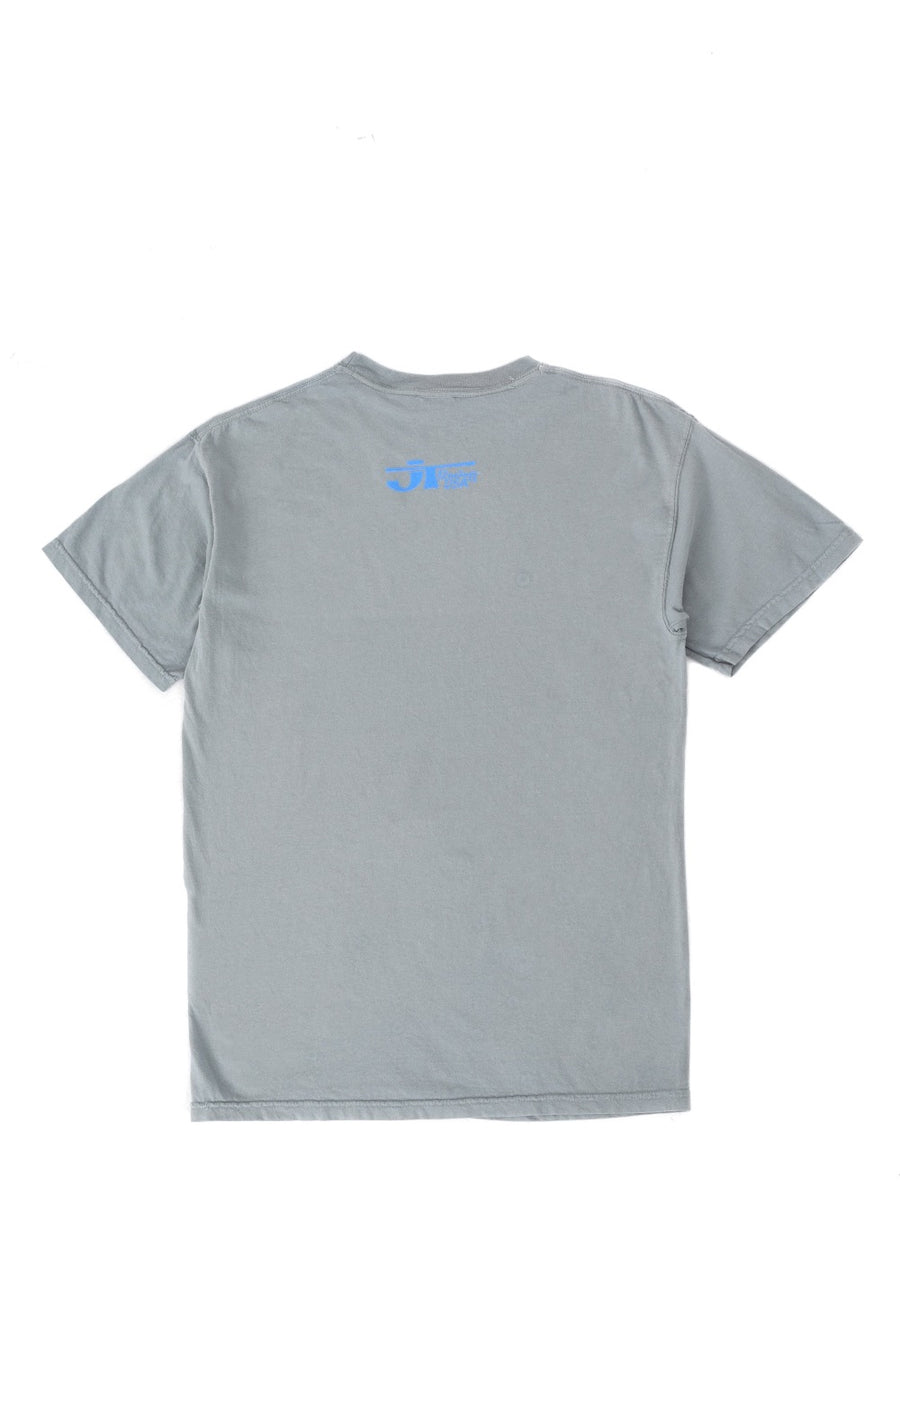 JT Speed Tee - Athletic Grey